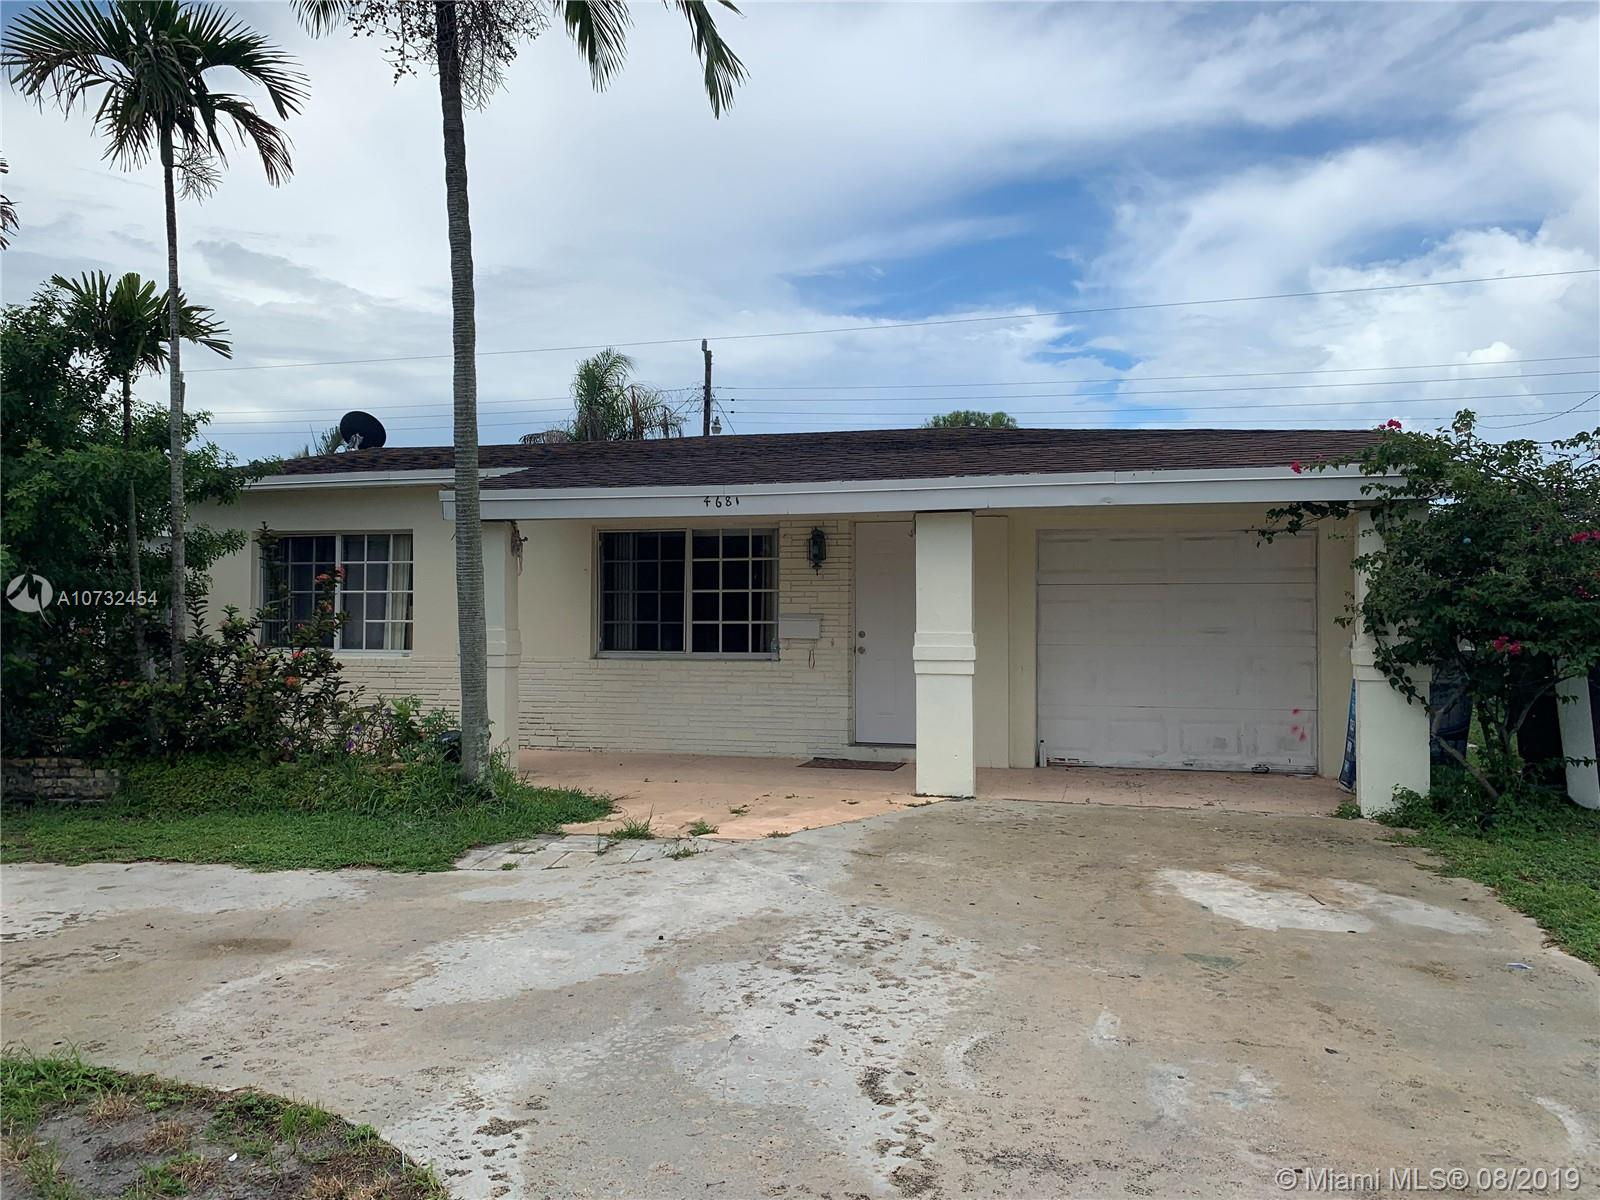 *This 2/1 features a remodeled kitchen, wooden cabinets**Stainless Steel appliances**Impact Windows**Plenty space for parking**Back is ample perfect for entertaining**Roof and AC 2014**PRICE IS NEGOTIABLE** Do not disturb tenants*